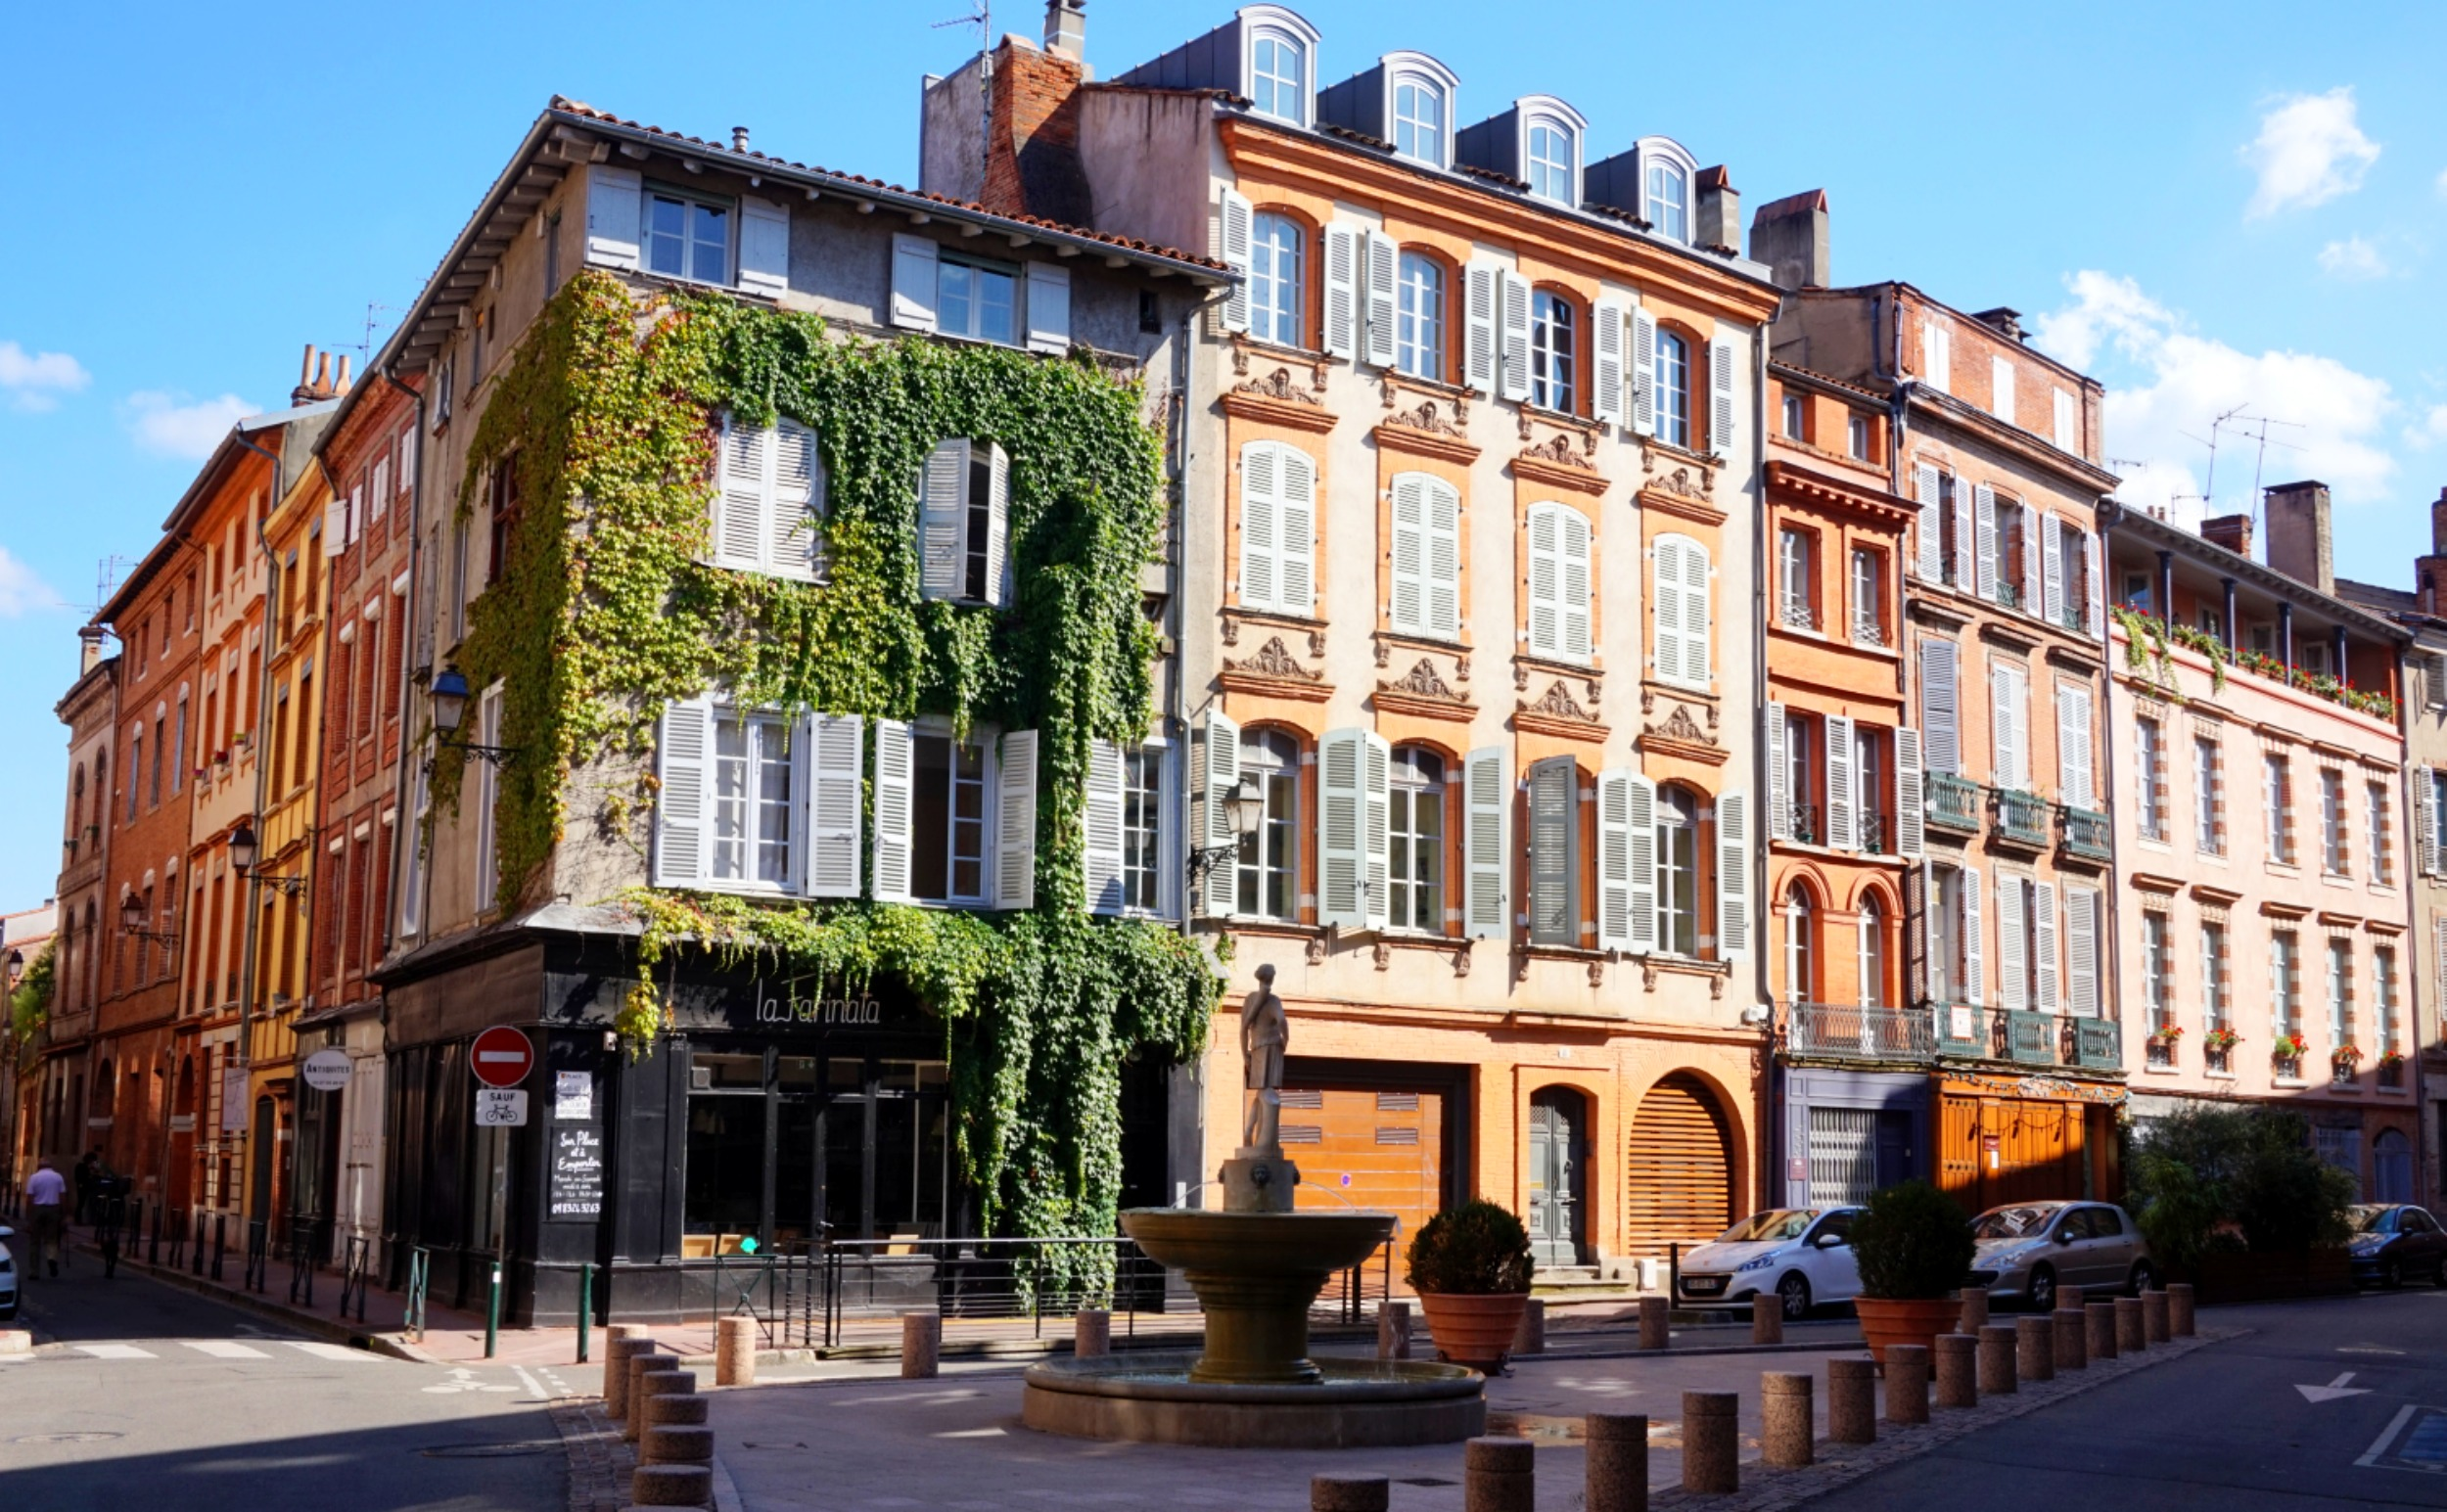 Balade-Toulouse-St-Etienne-13